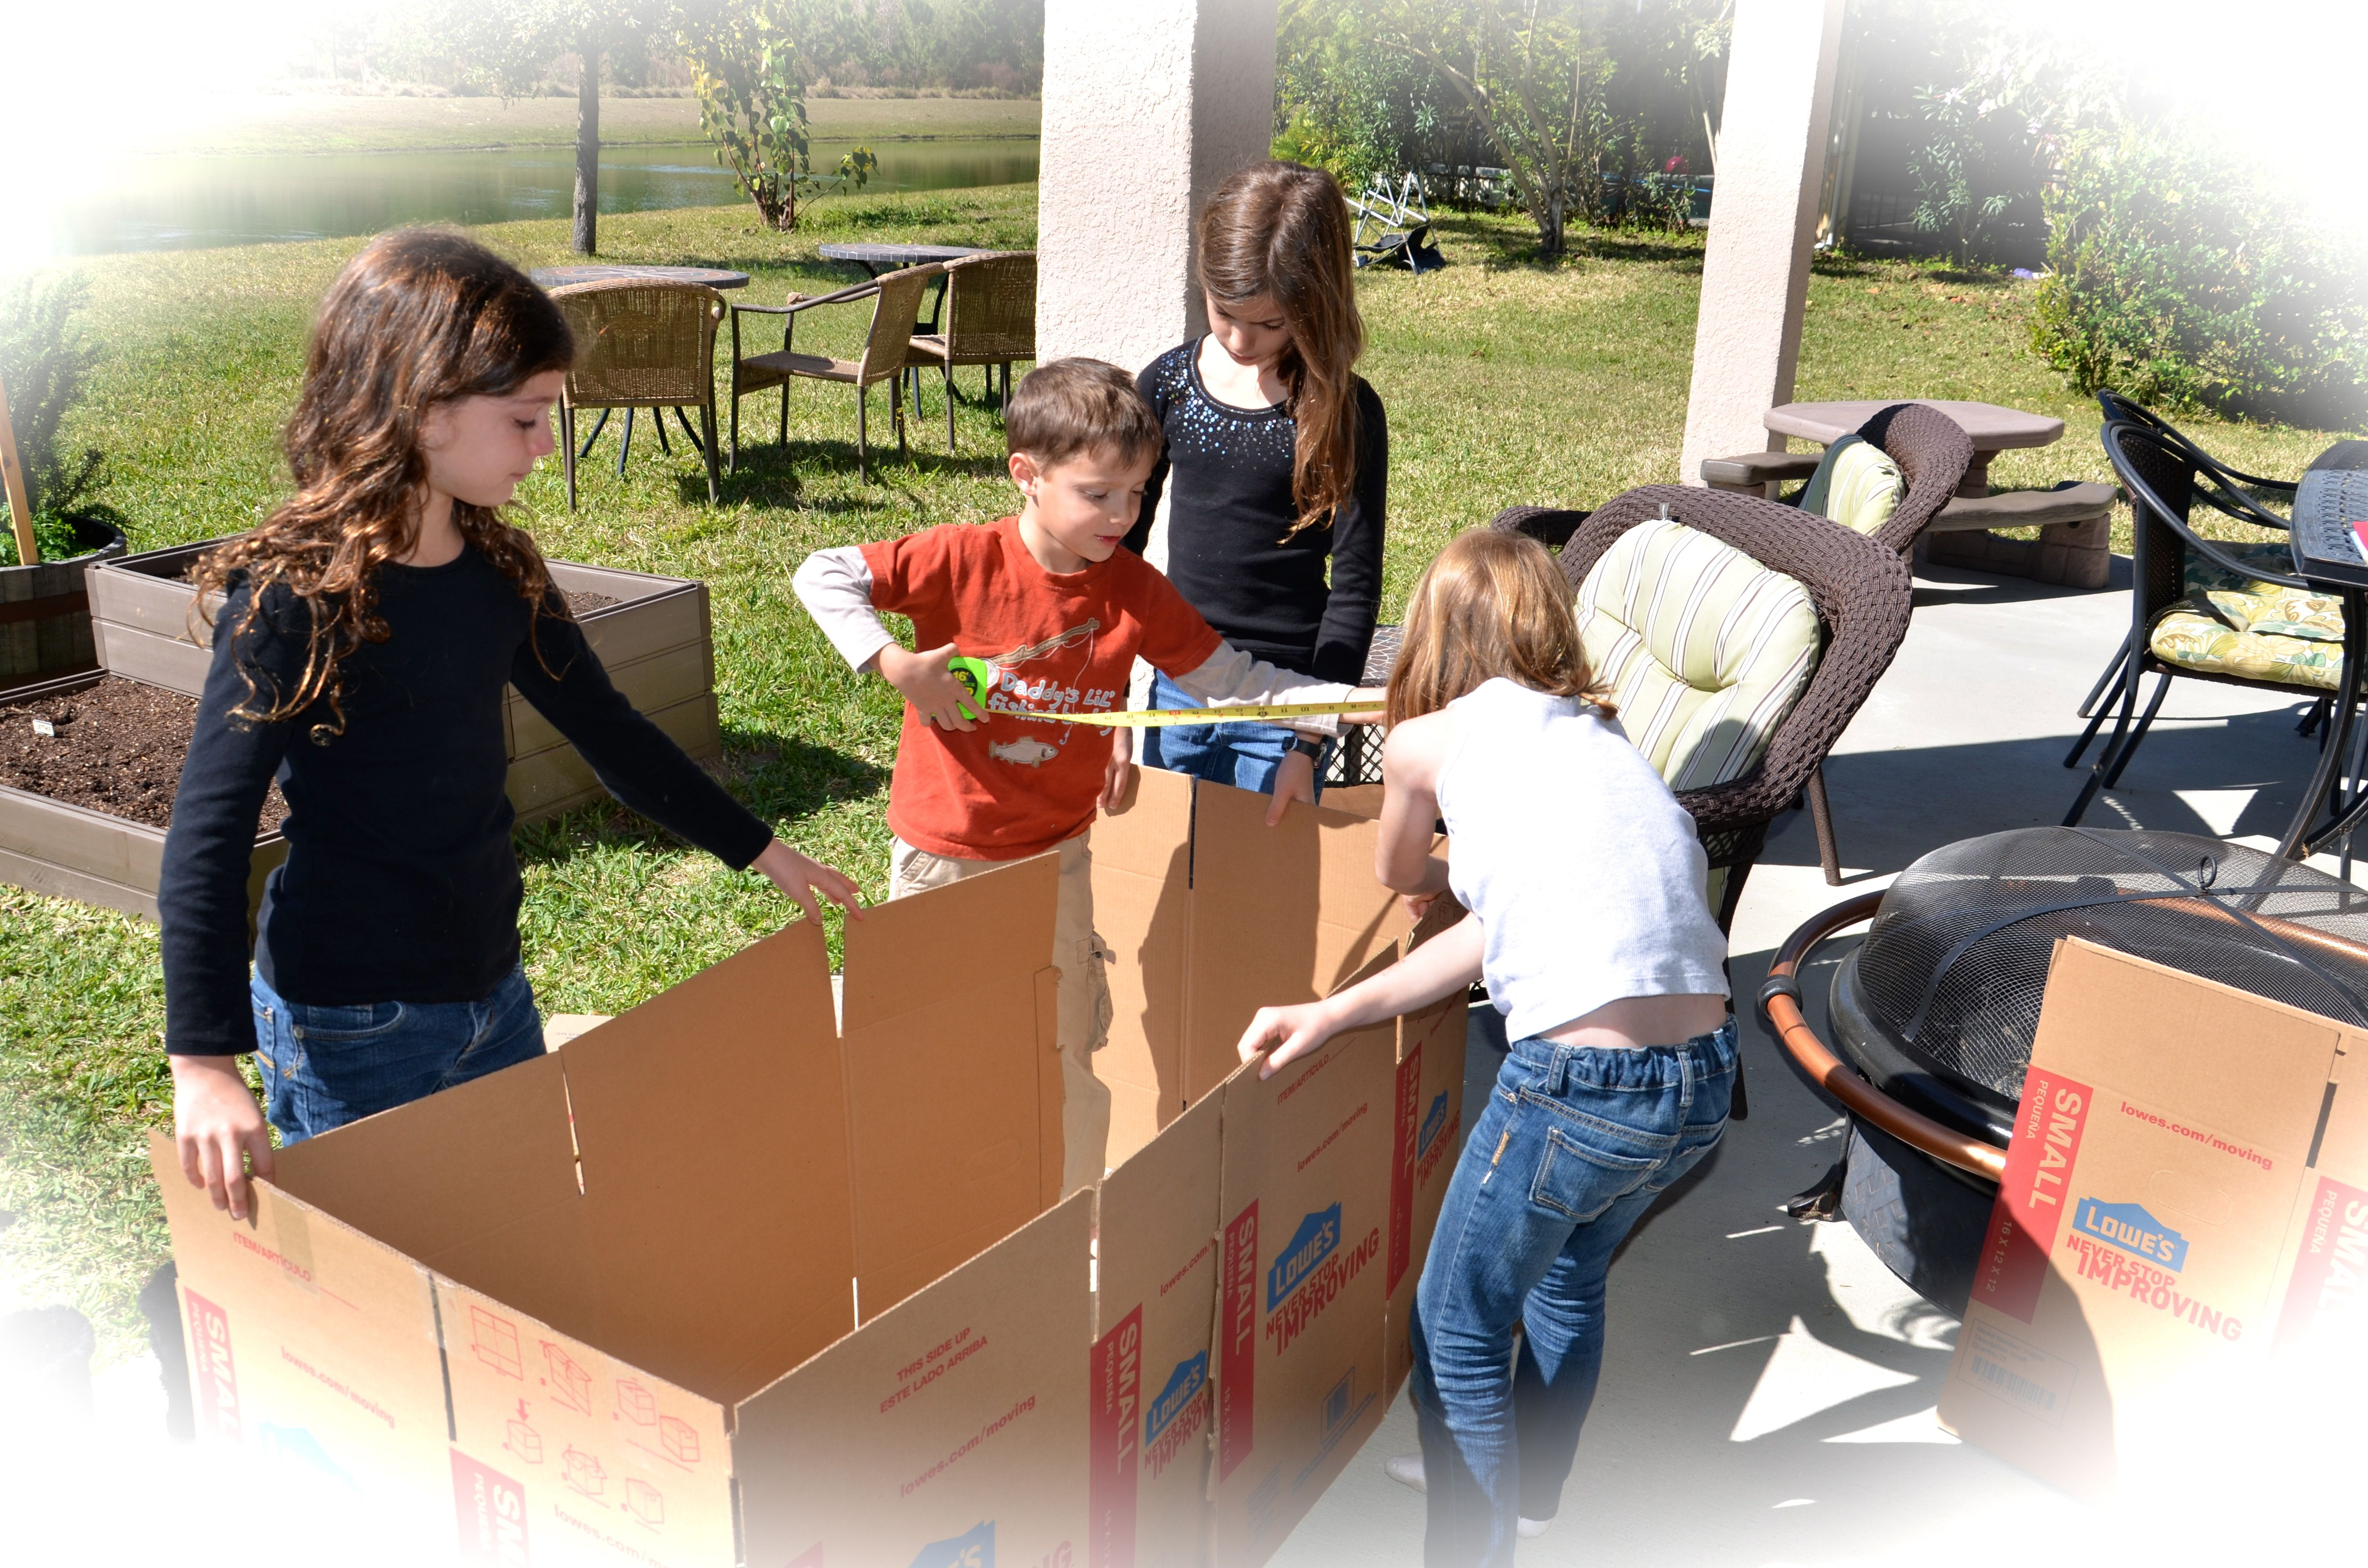 Making Henry S Freedom Box This Activity Would Give The Students A Great First Hand Experience